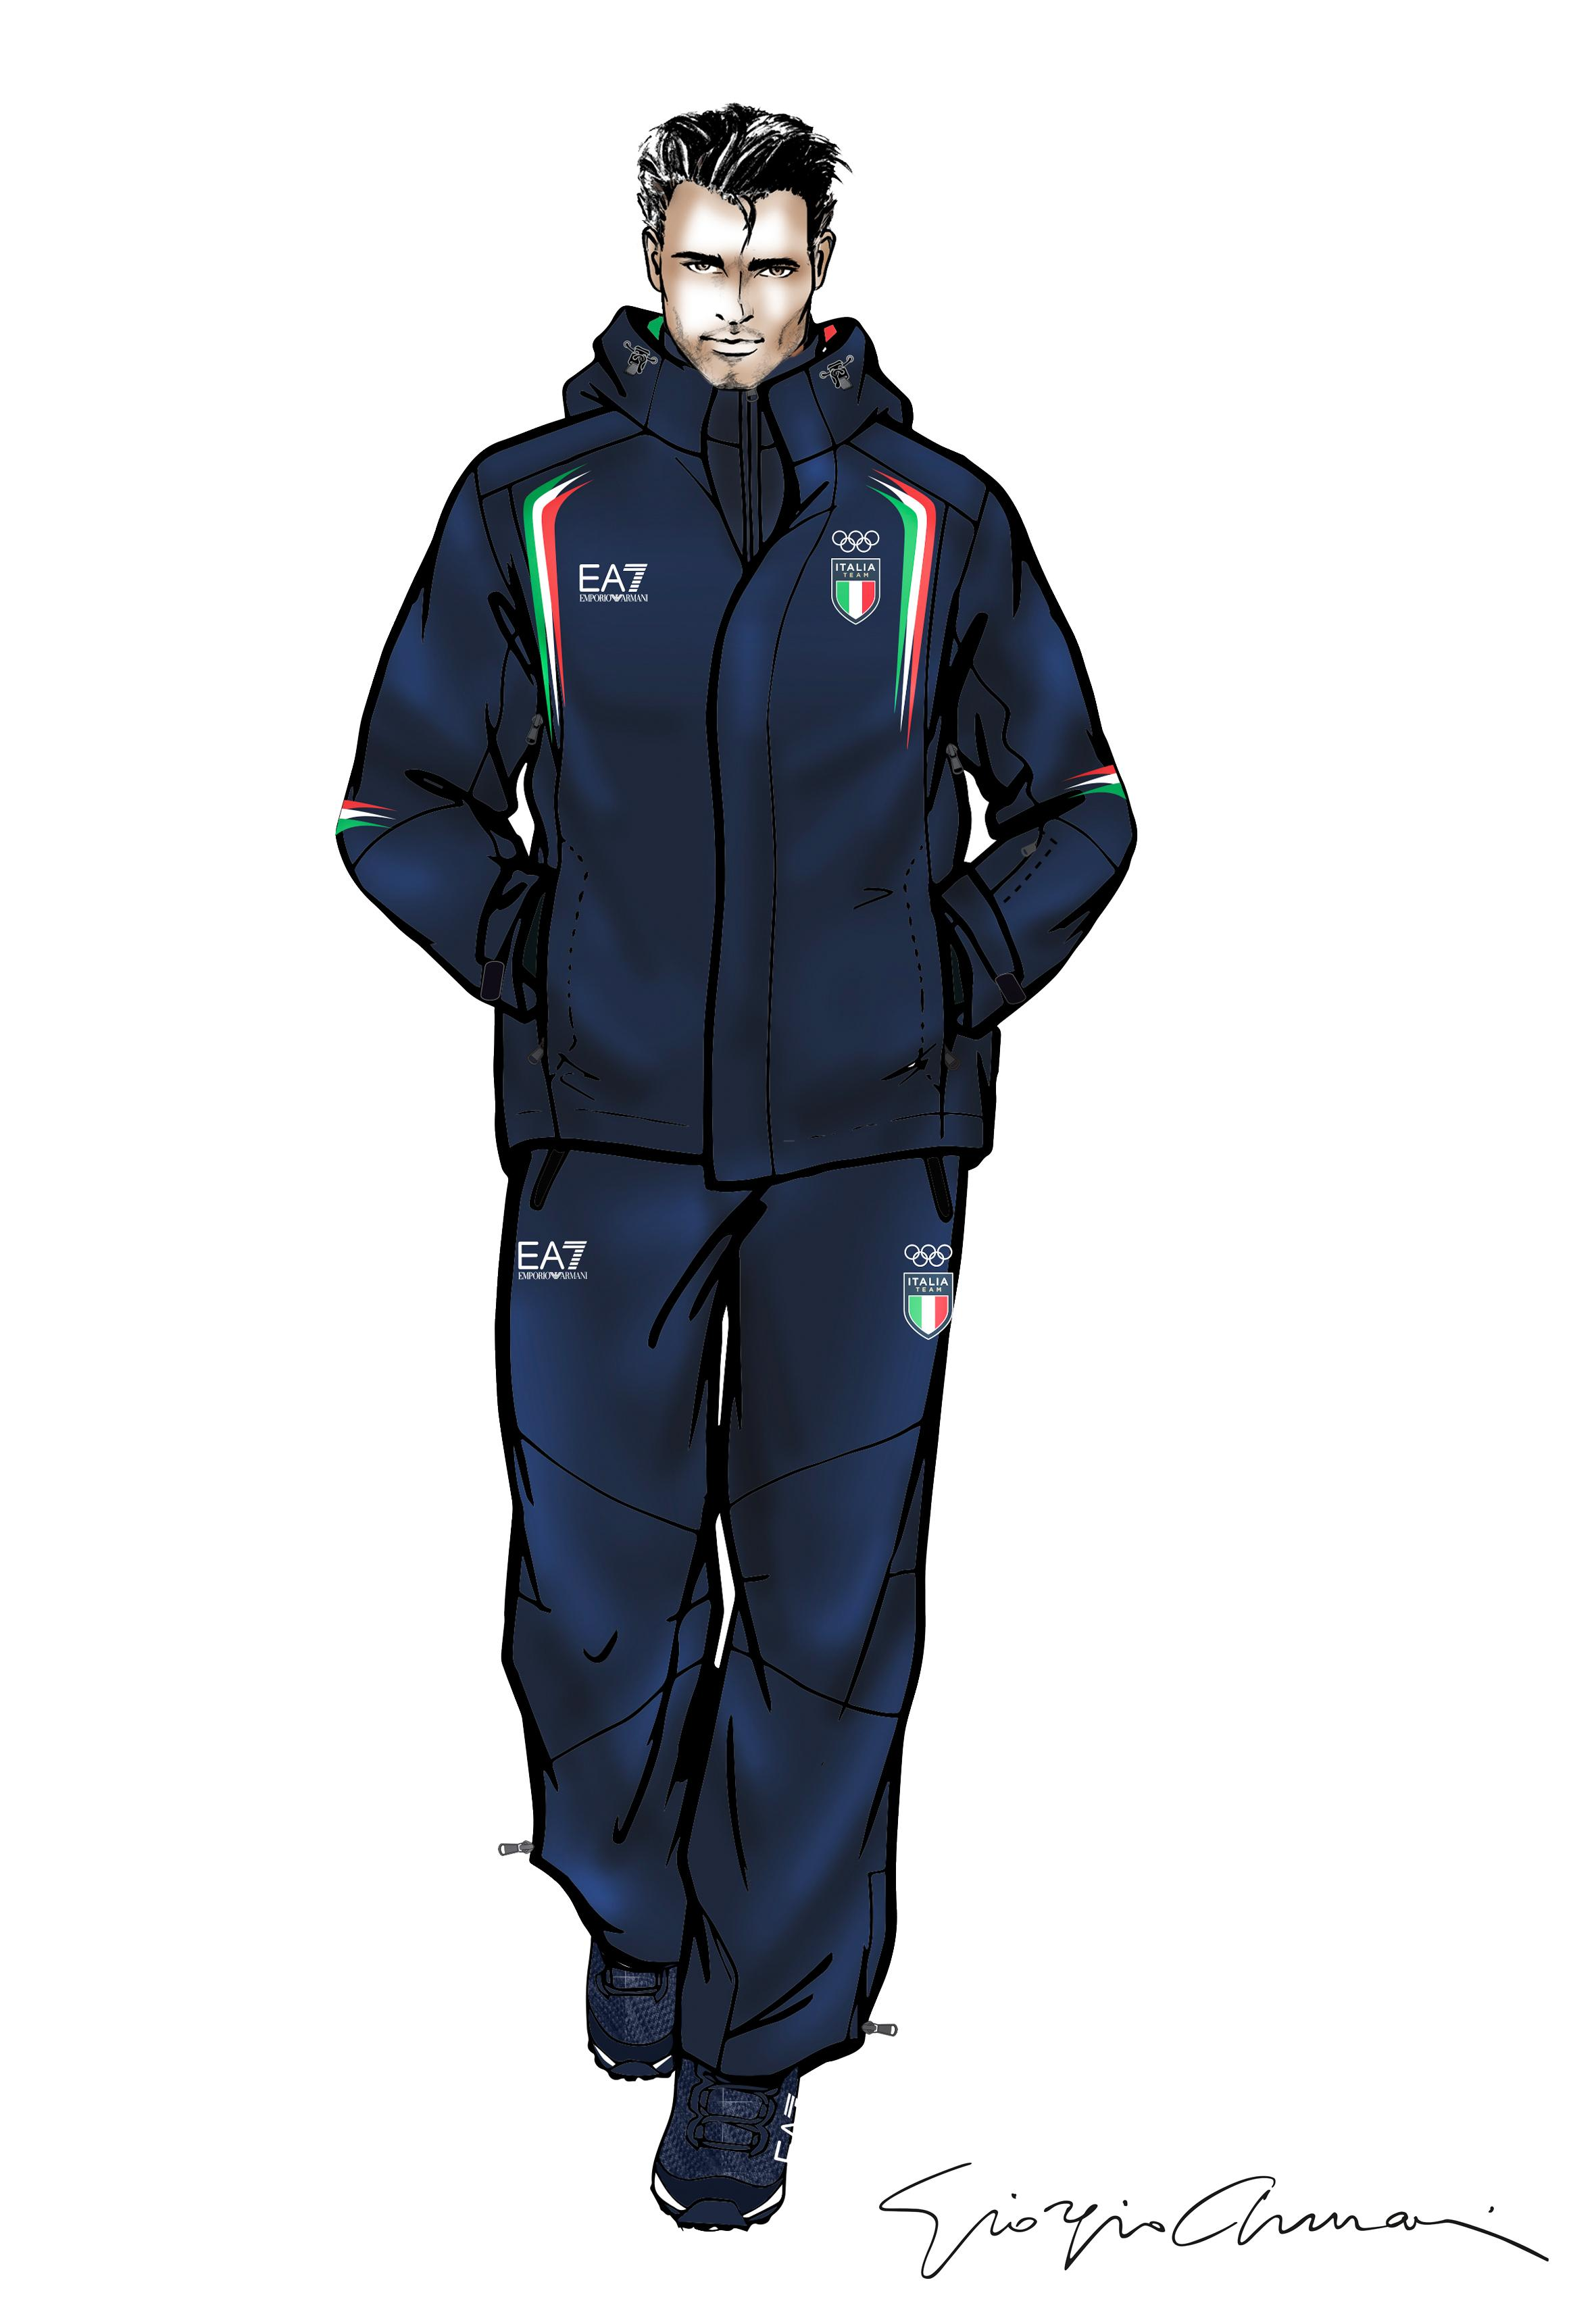 bbb959a2b EA7 Emporio Armani will be the official outfitter of the 2018 Italian  Olympic and Paralympic teams for the Winter Games in Pyeongchang, South  Korea.